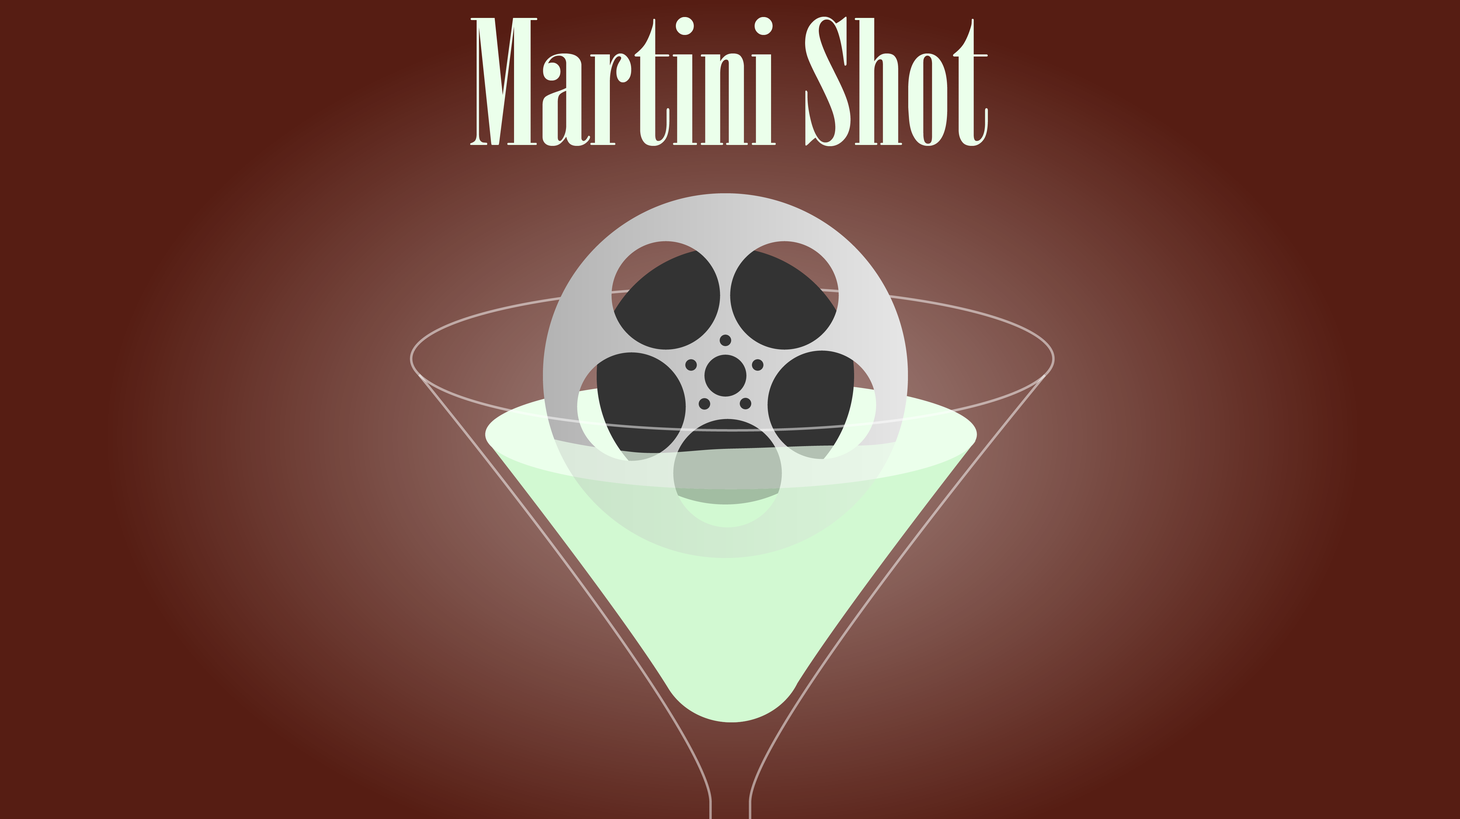 Robwrote this Martini Shot on a conference call. He also bought a ticket to New York. He does a lot of things when he's on a conference call. Except pay attention.